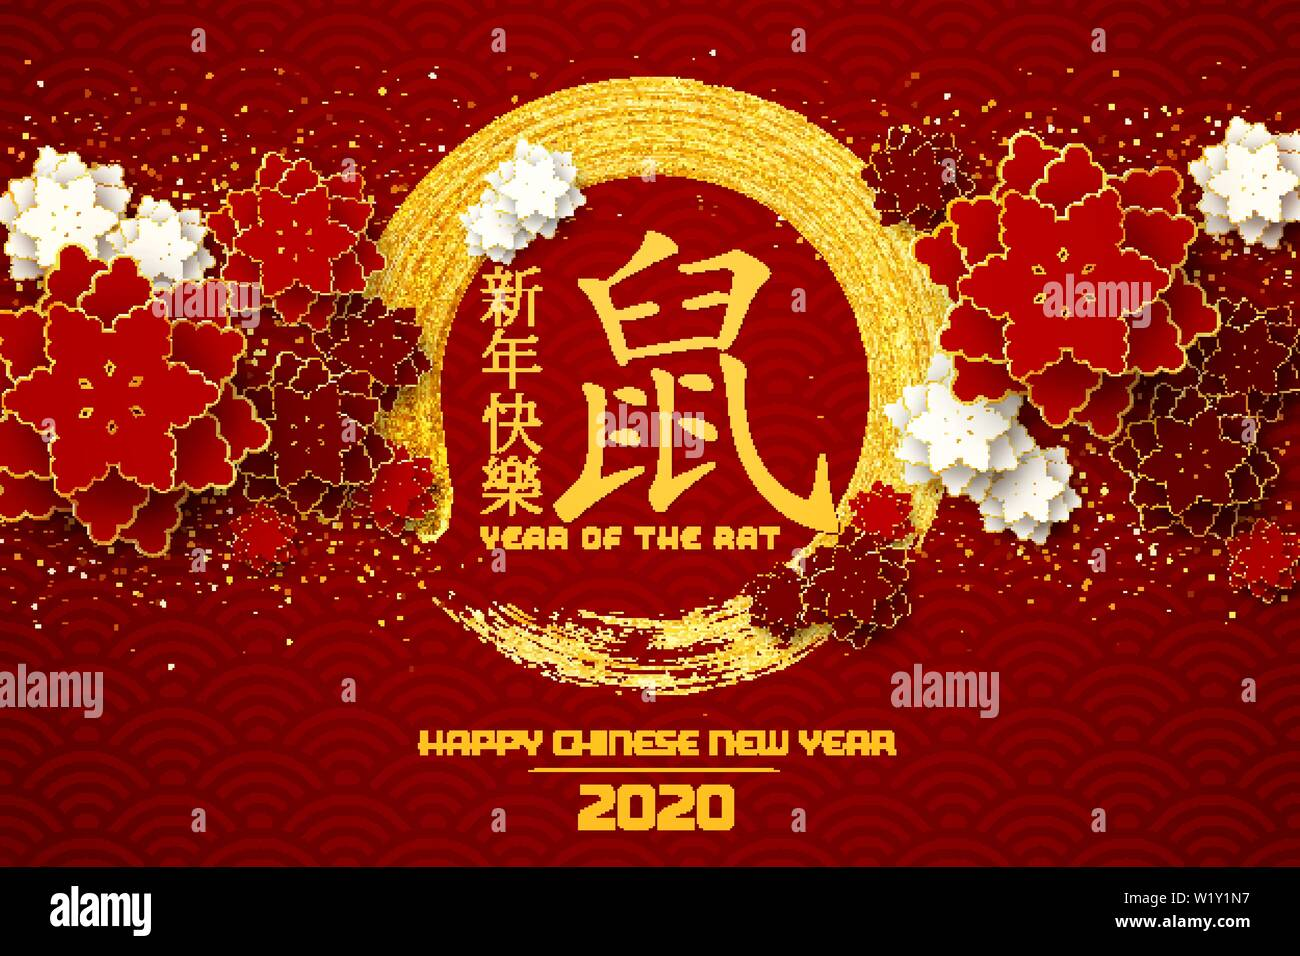 2020 Chinese New Year.Happy Chinese New Year 2020 Red Greeting Card Stock Vector